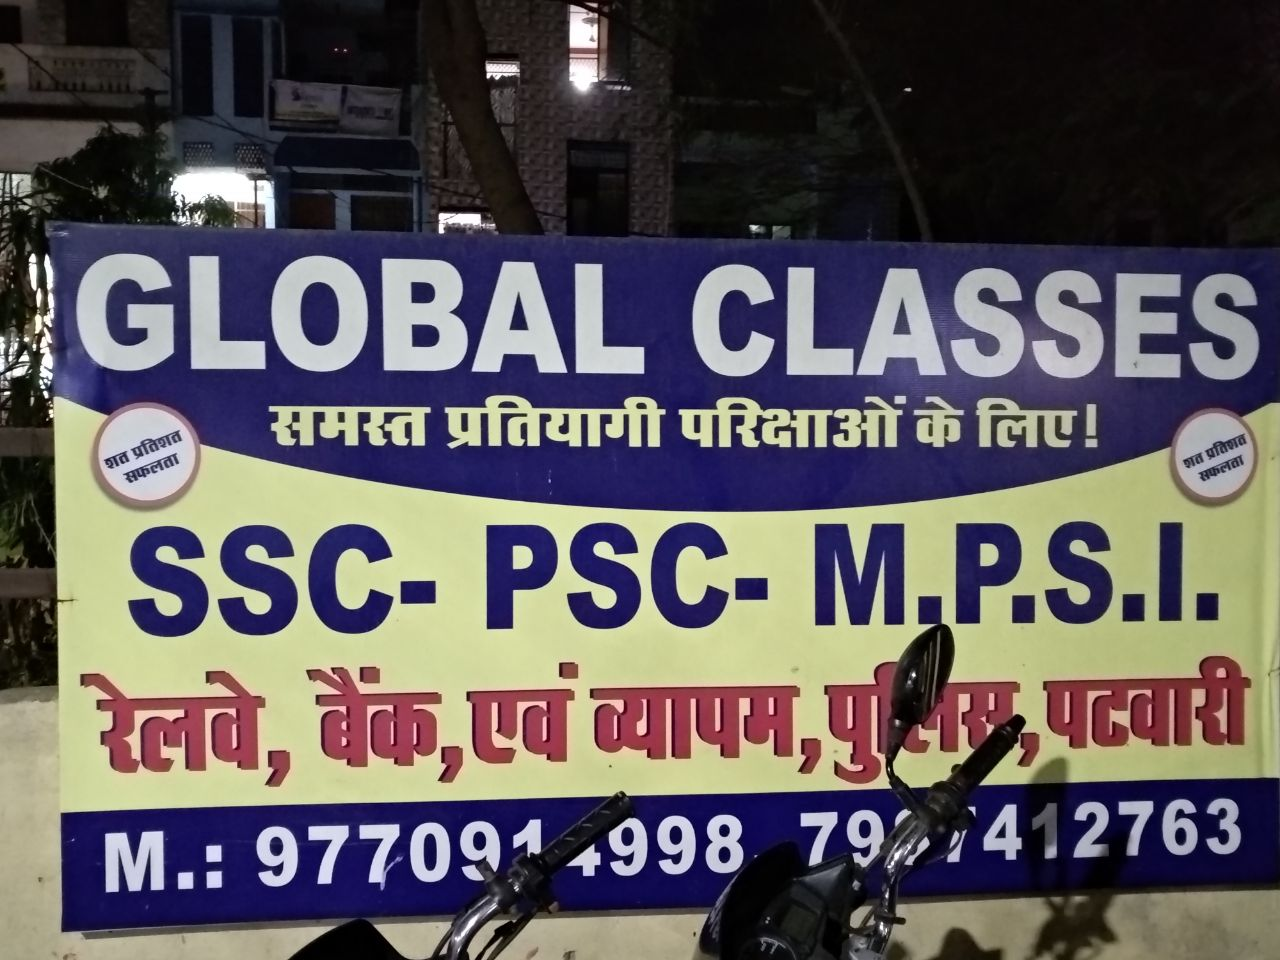 Global classes ashoka garden